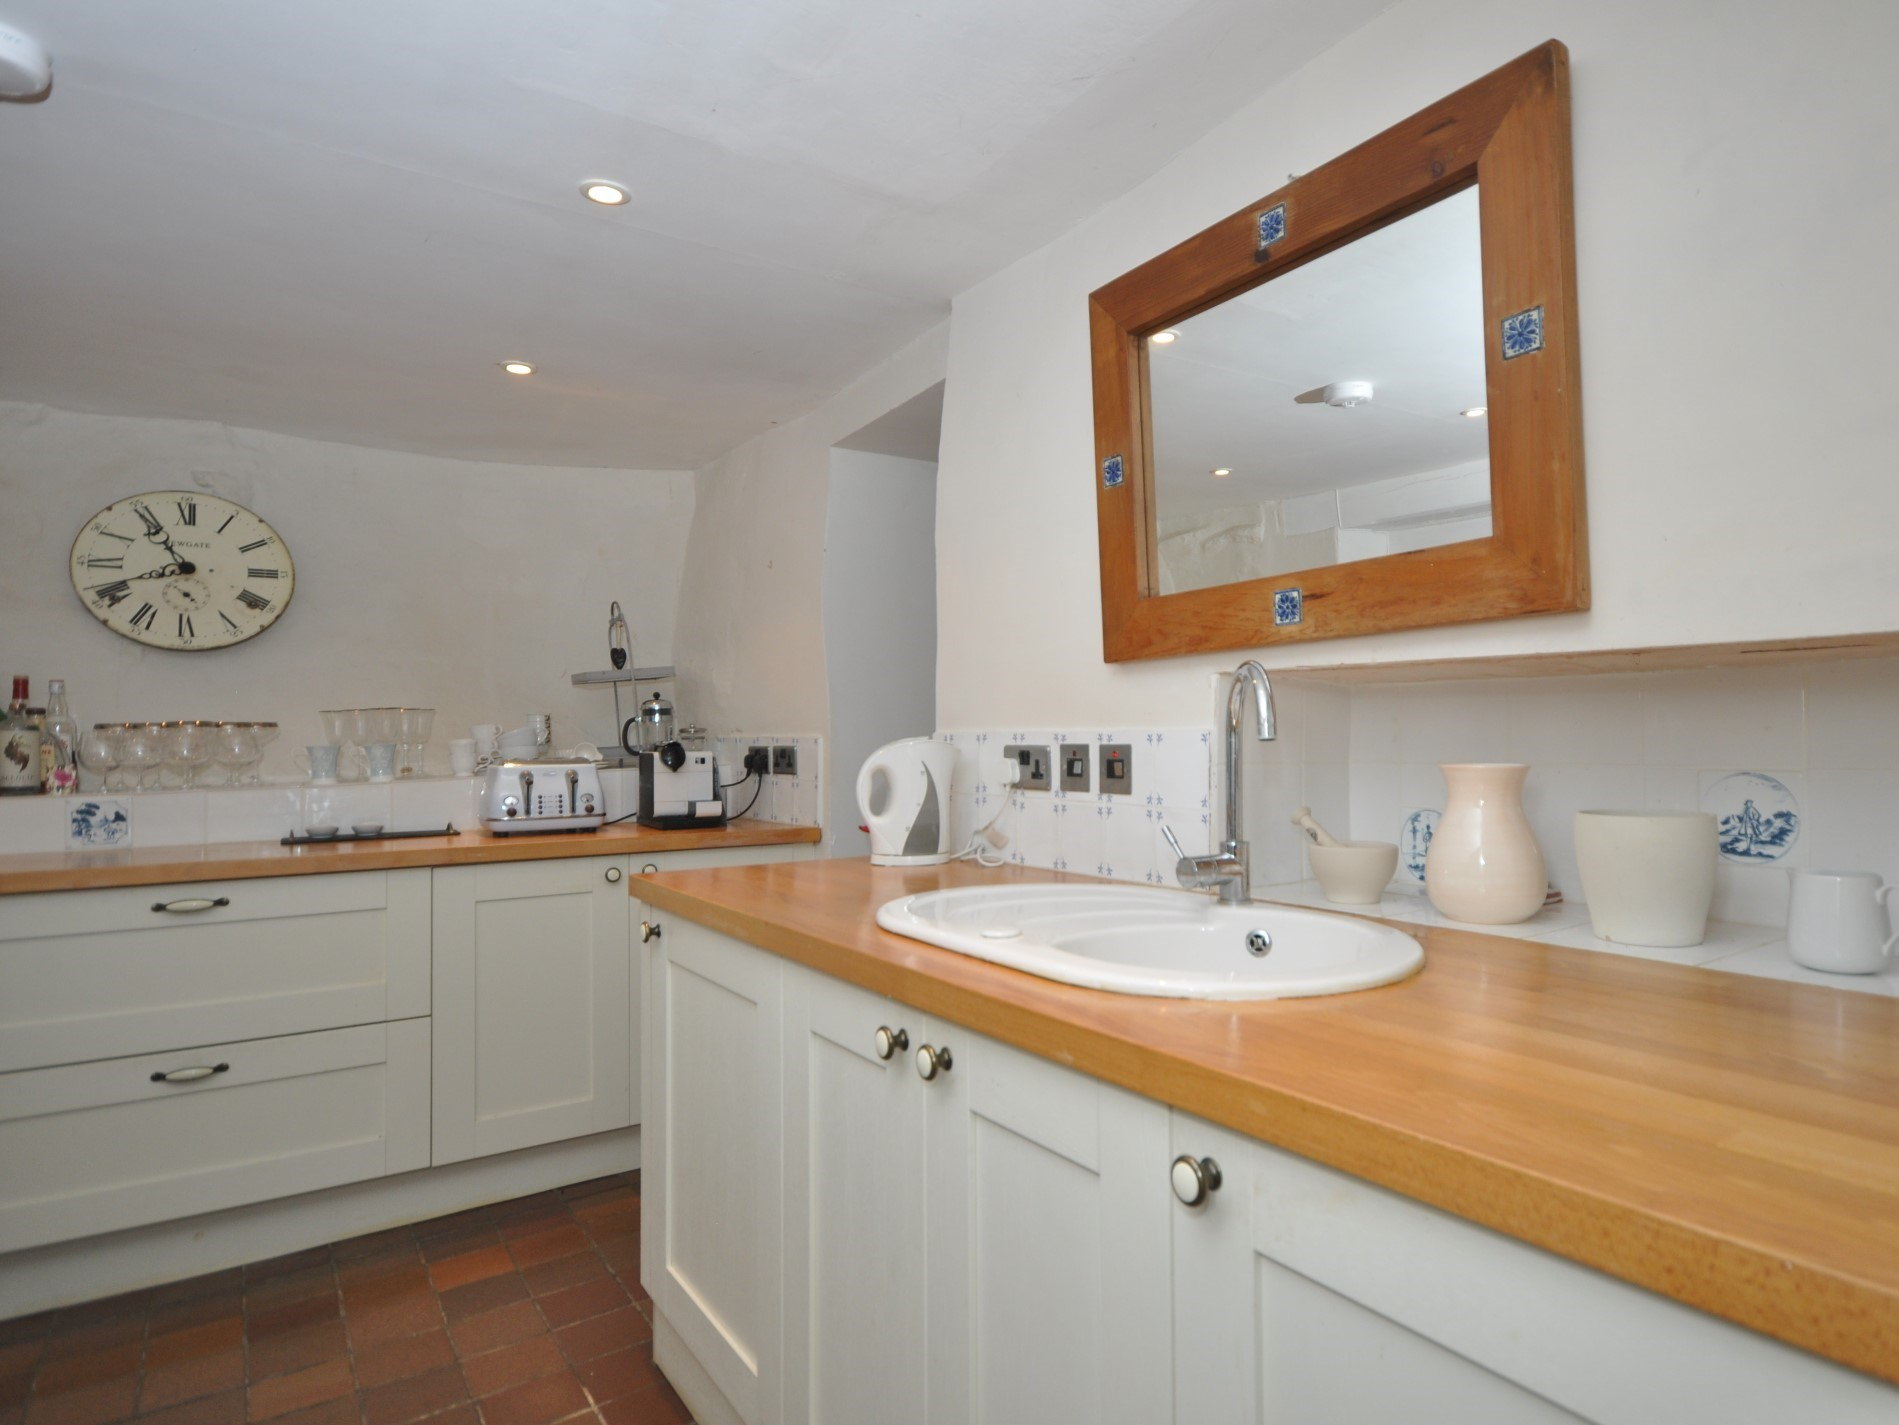 The kitchen has great character with wooden work tops